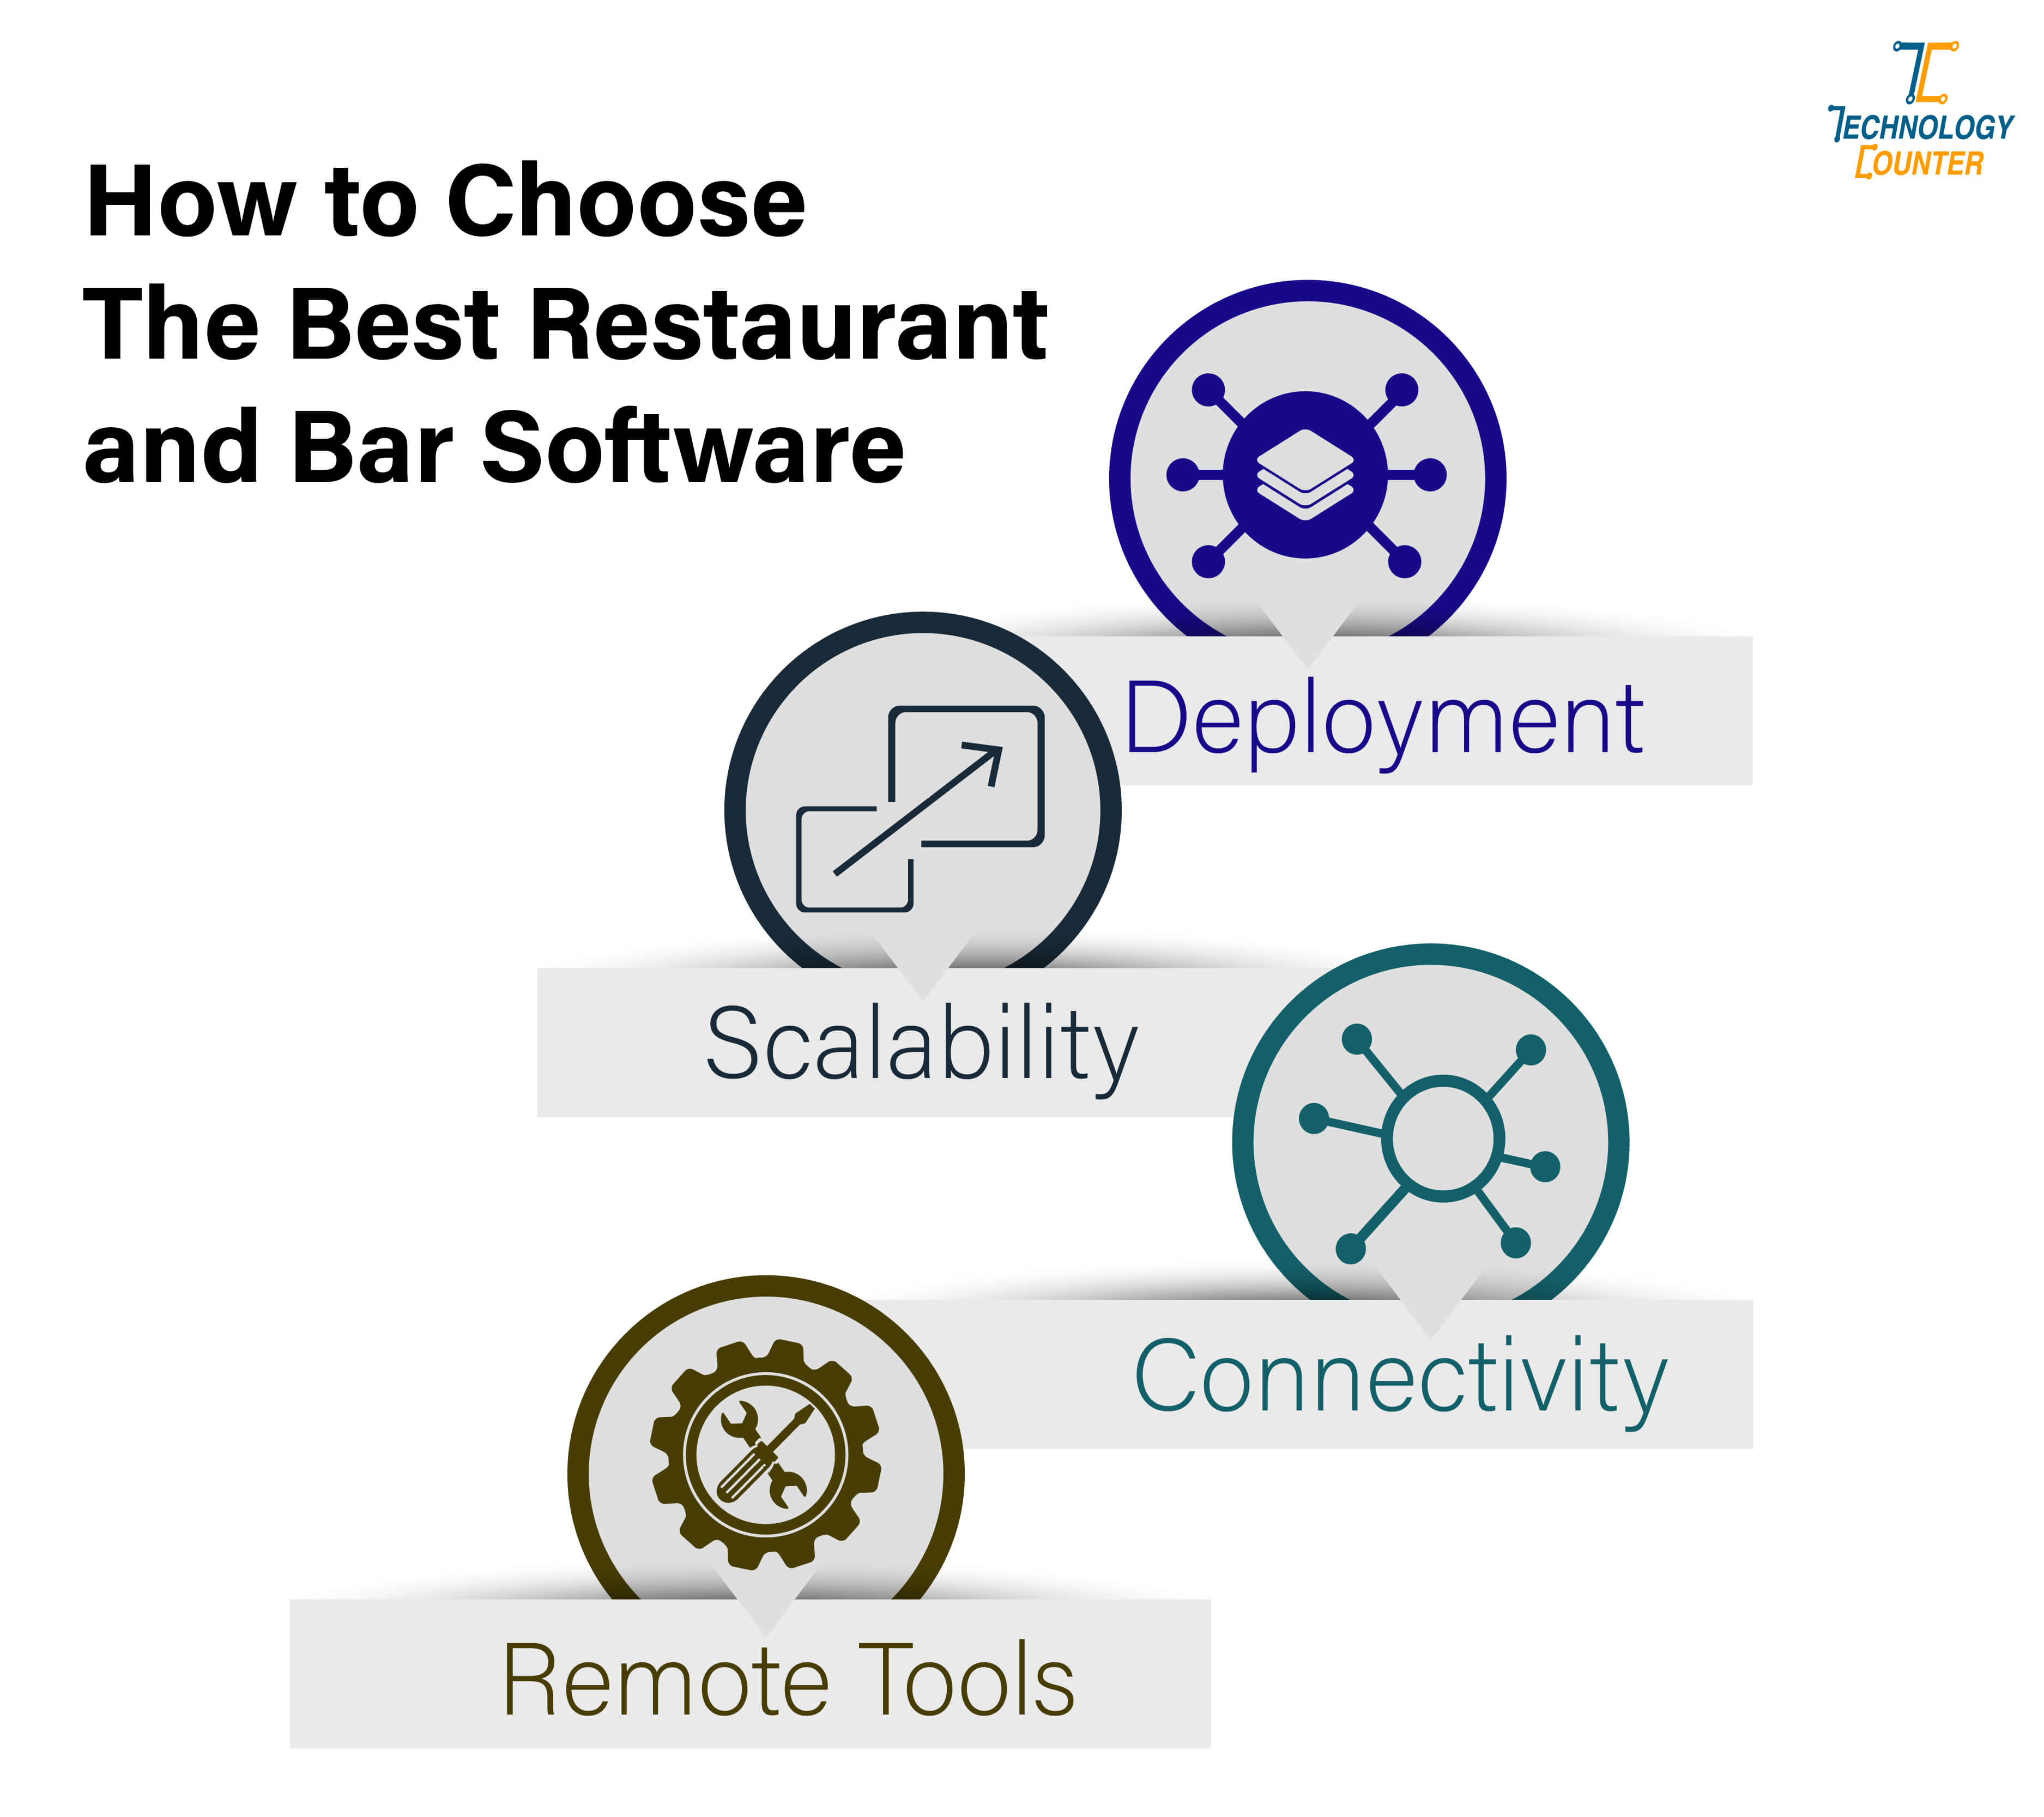 How to Choose the Best Restaurant and Bar Software